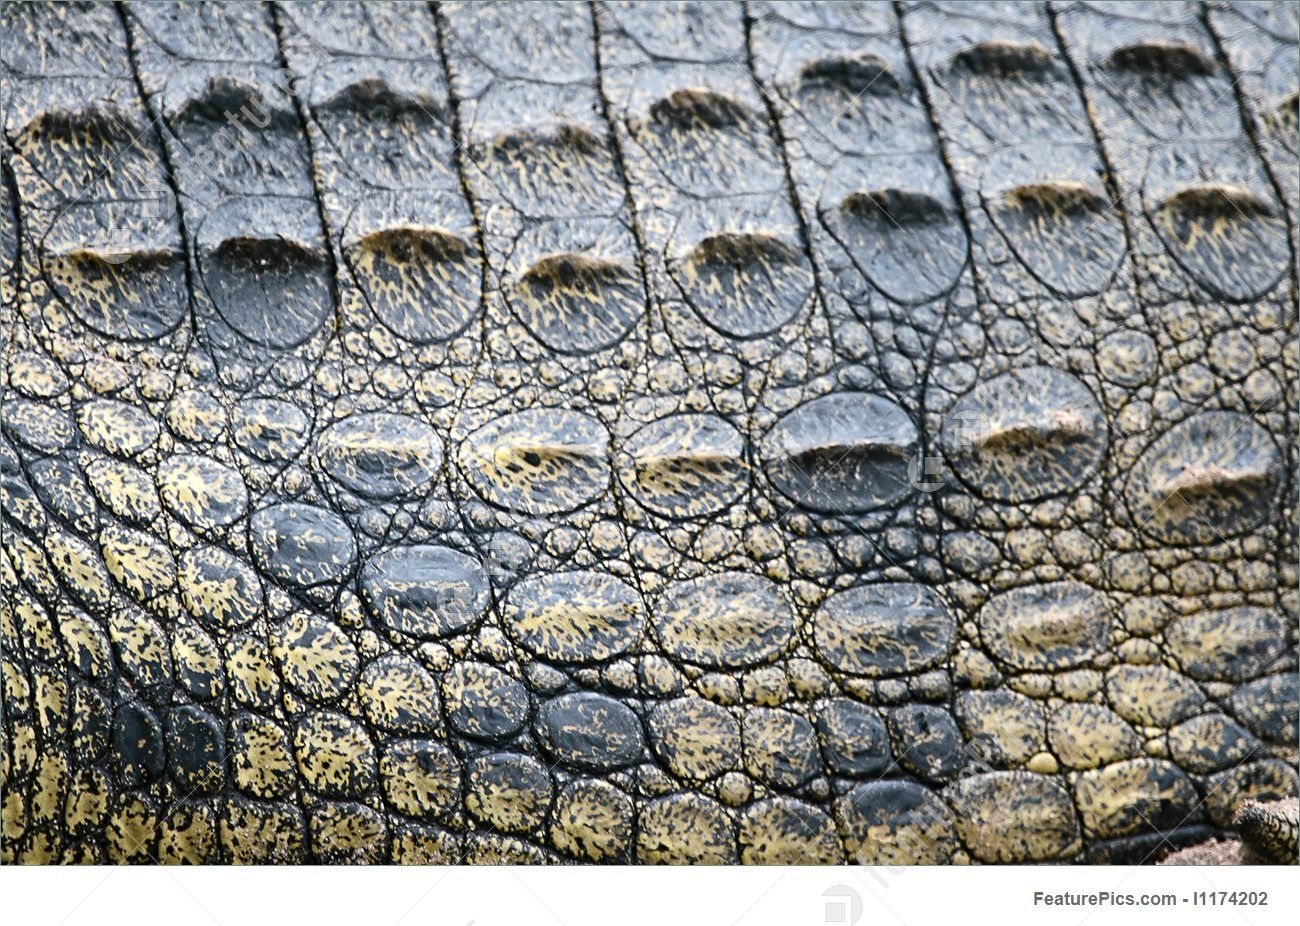 how to draw alligator scales